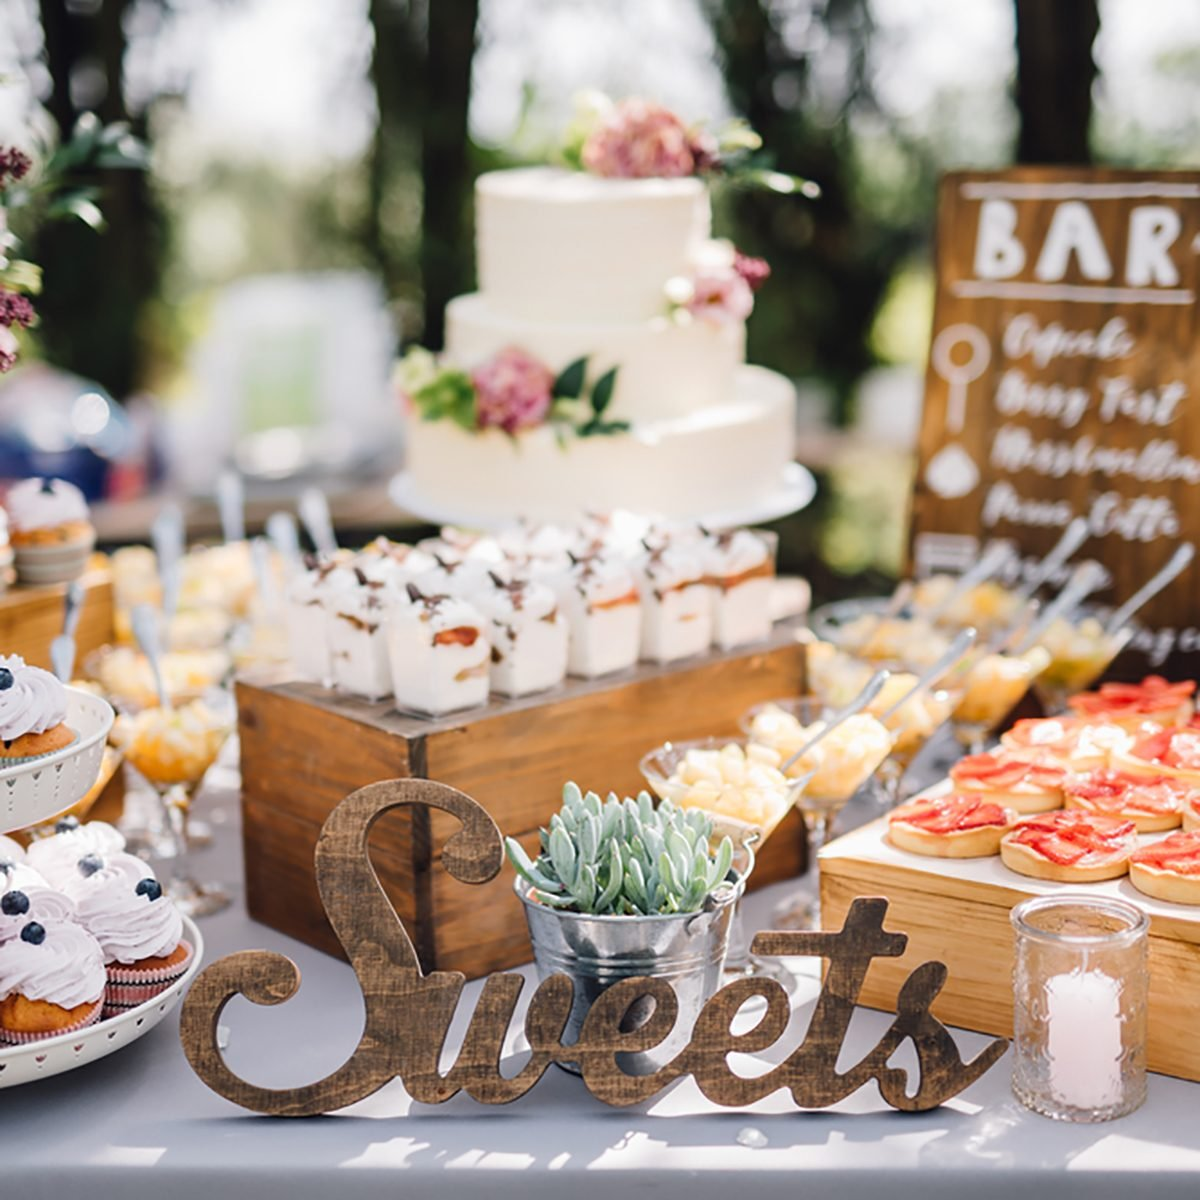 10 Dessert Table Ideas To Make Your Wedding Reception